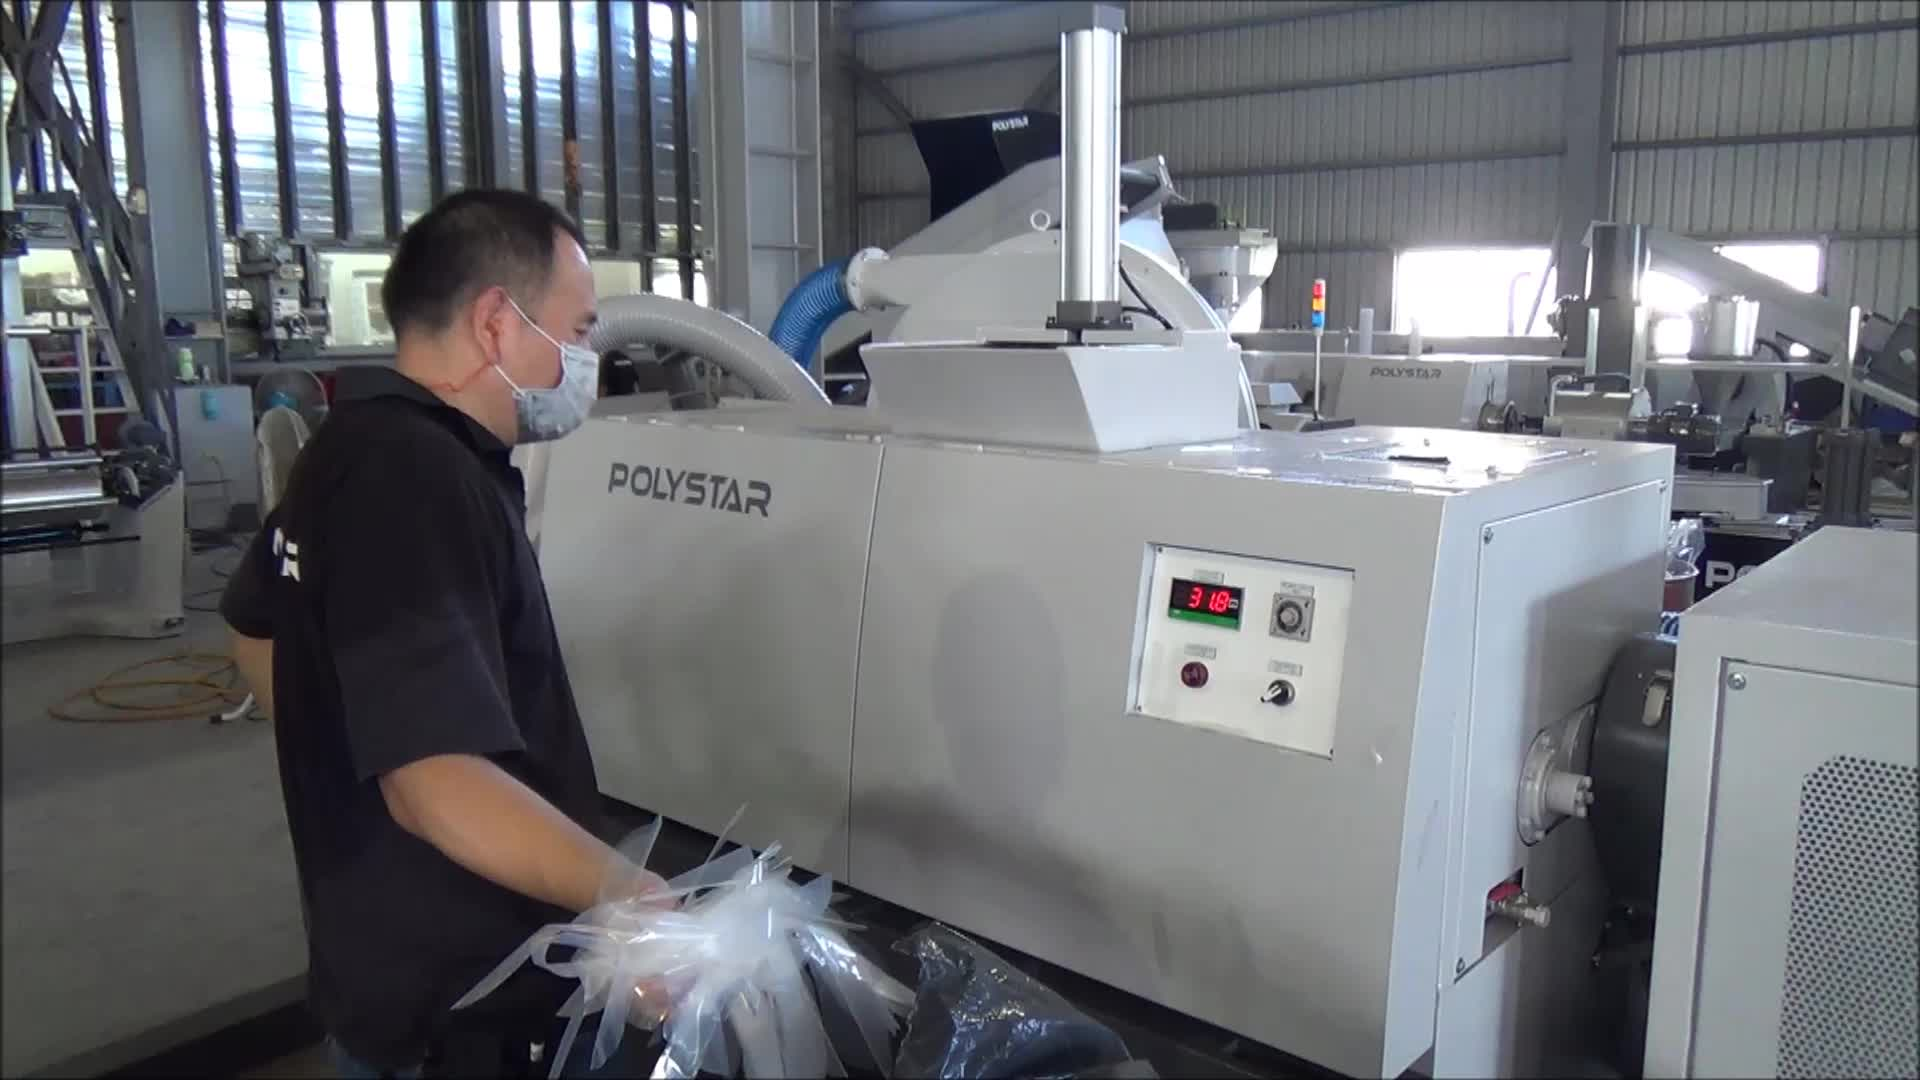 Air cooled recycling machine